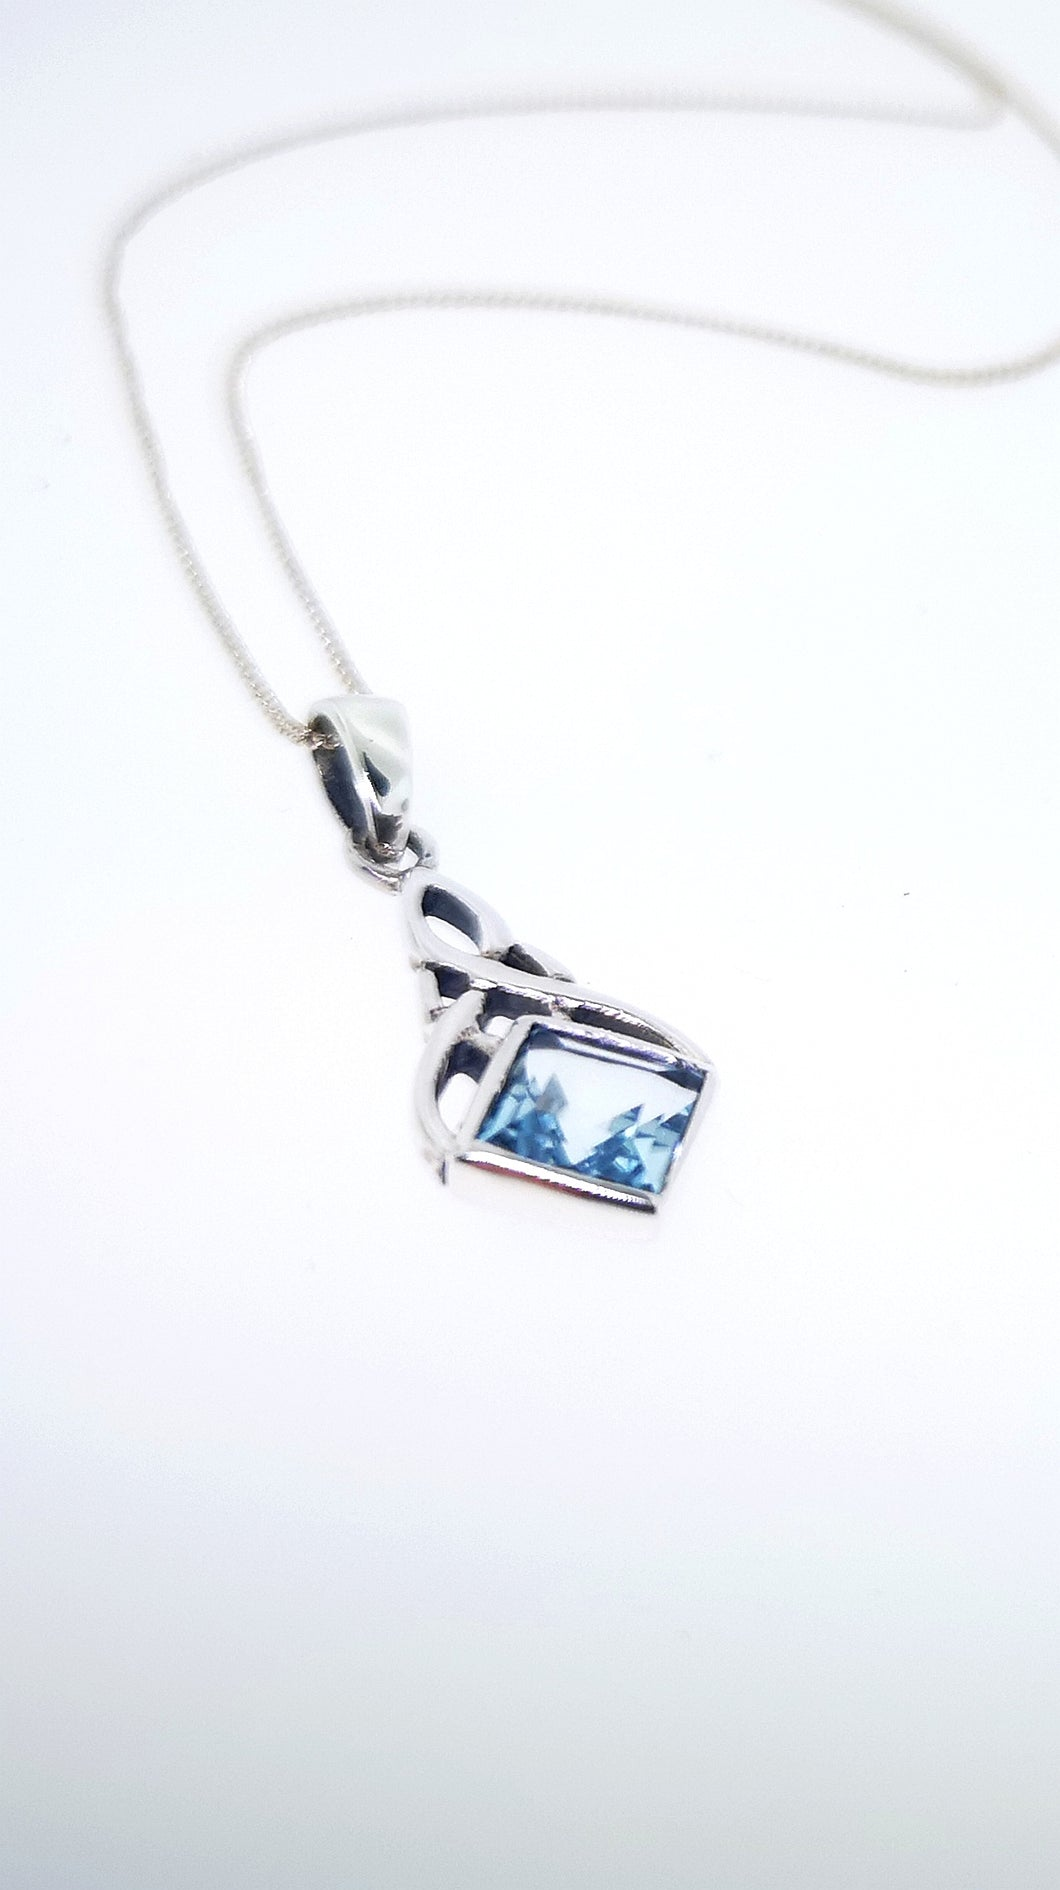 Celtic Weave Pendant - Sterling Silver With Aquamarine